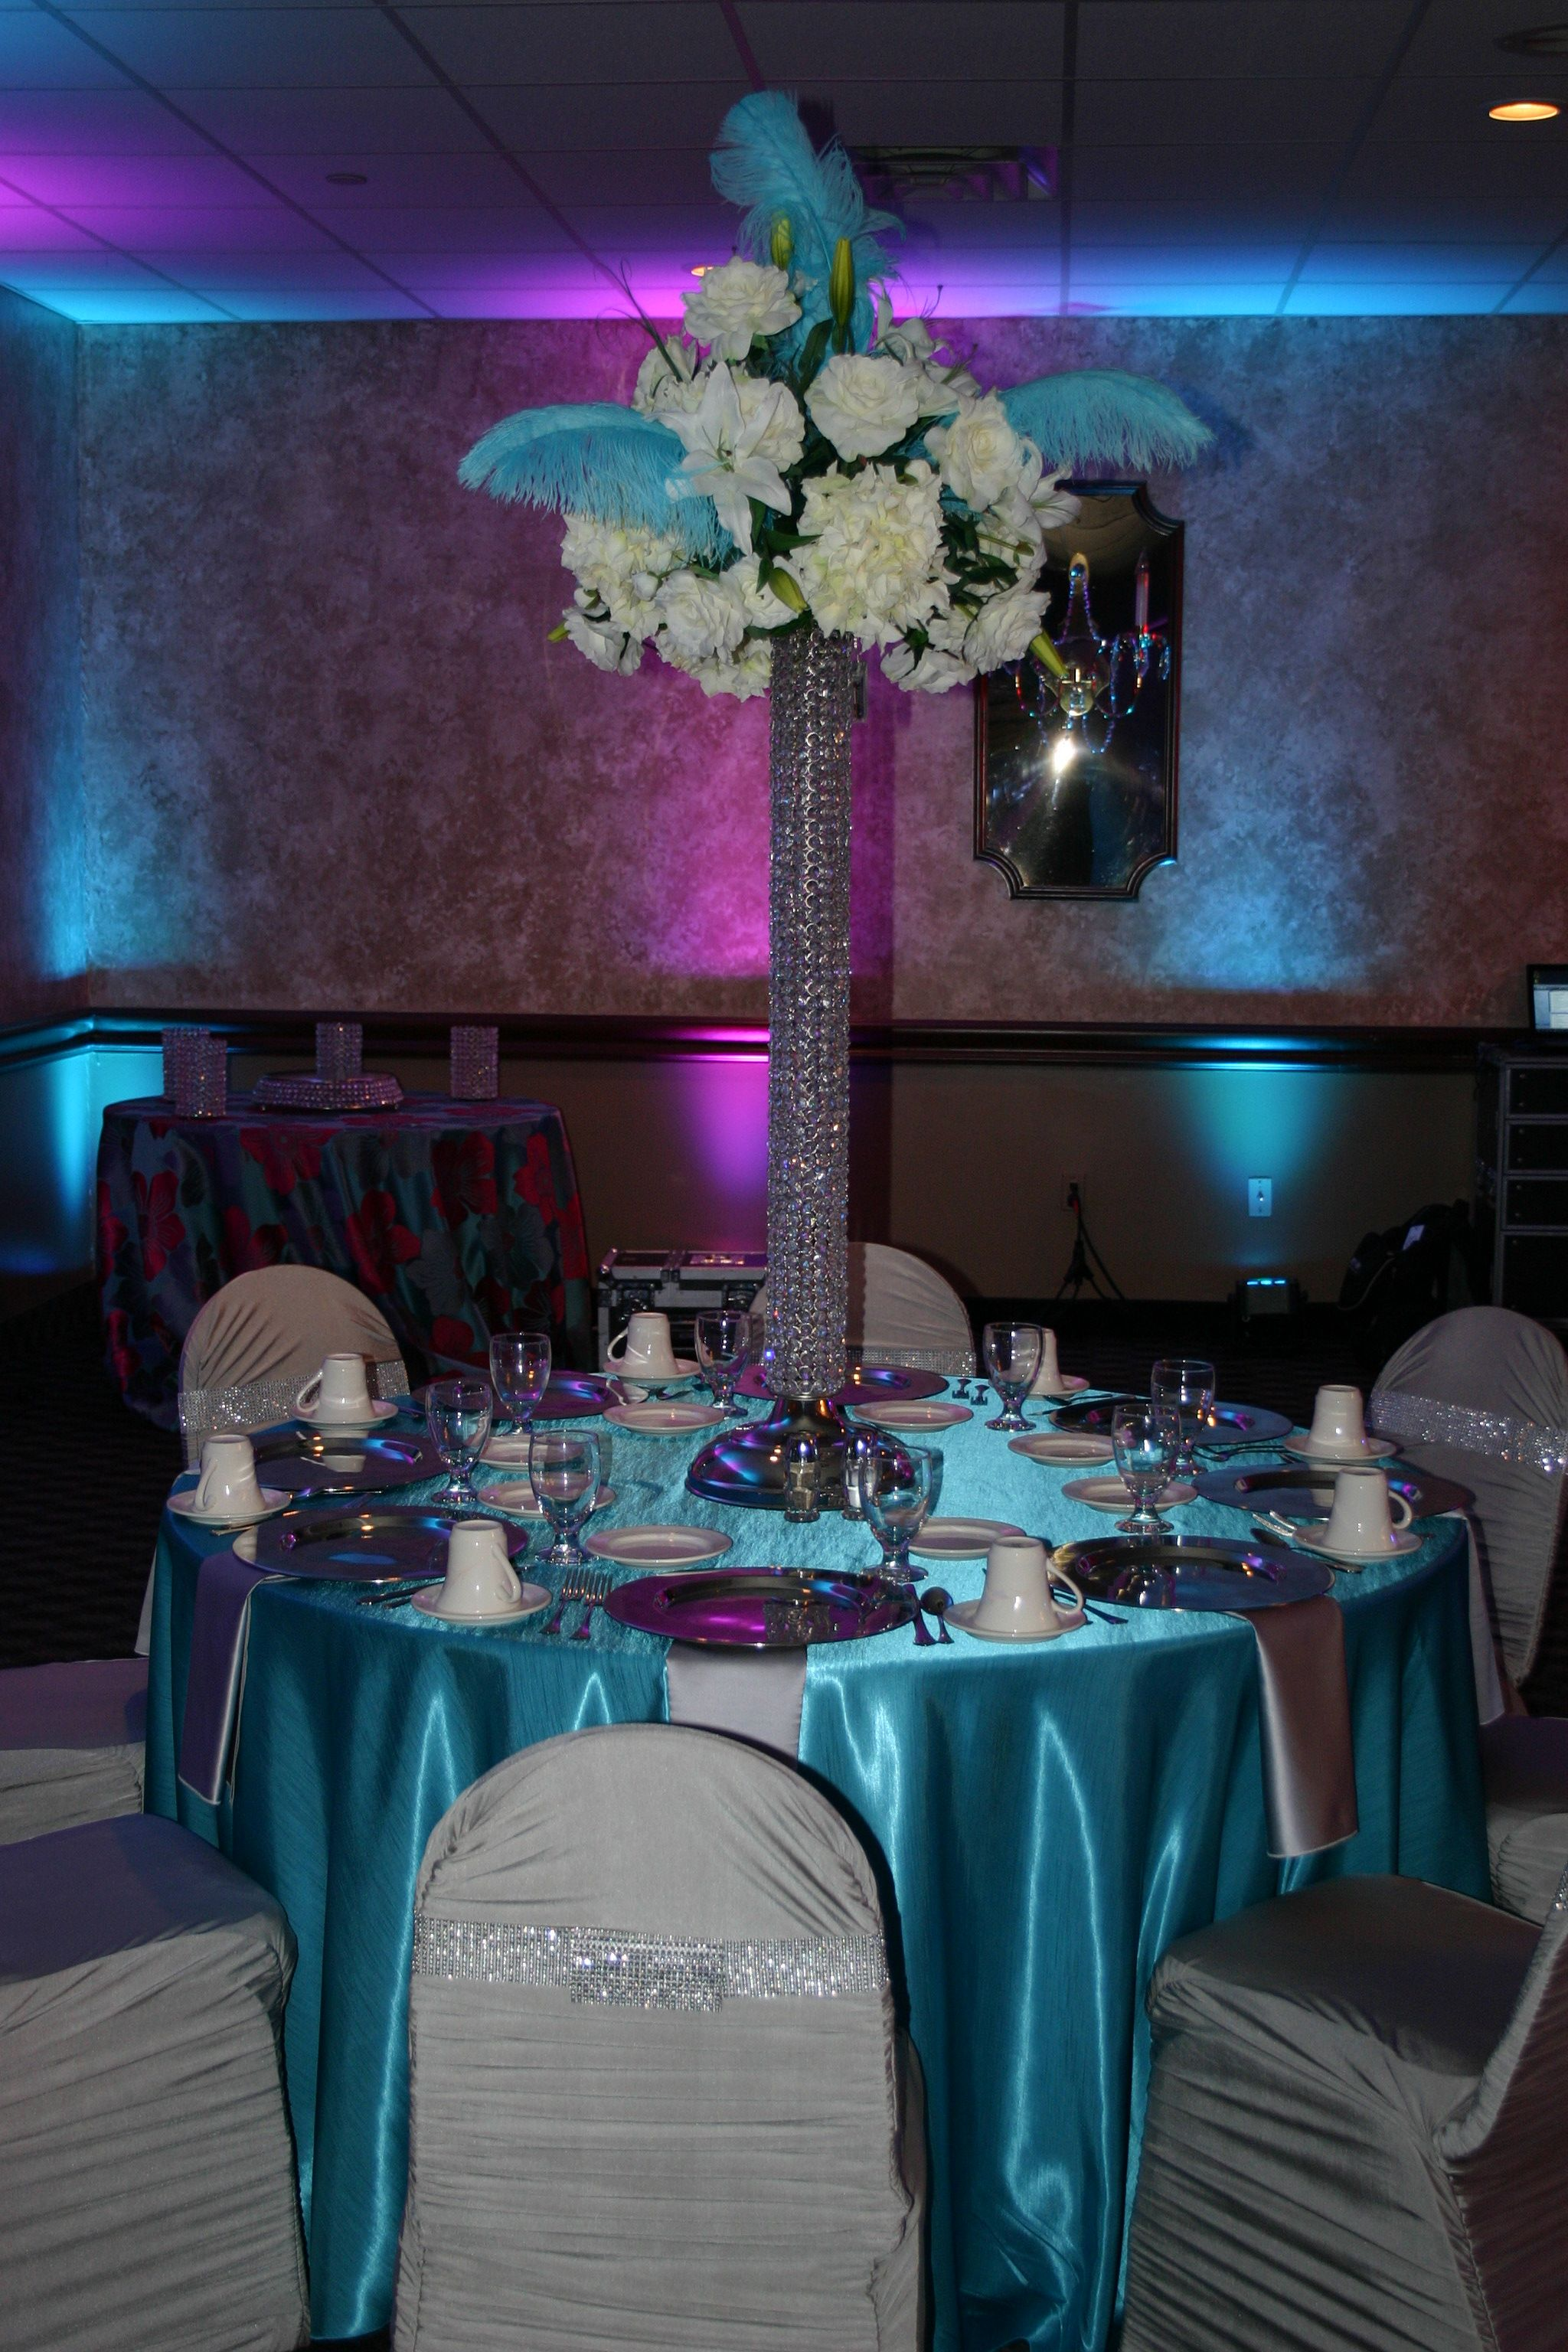 A Clients Wedding Reception Tablescapes And Centerpiece Designed